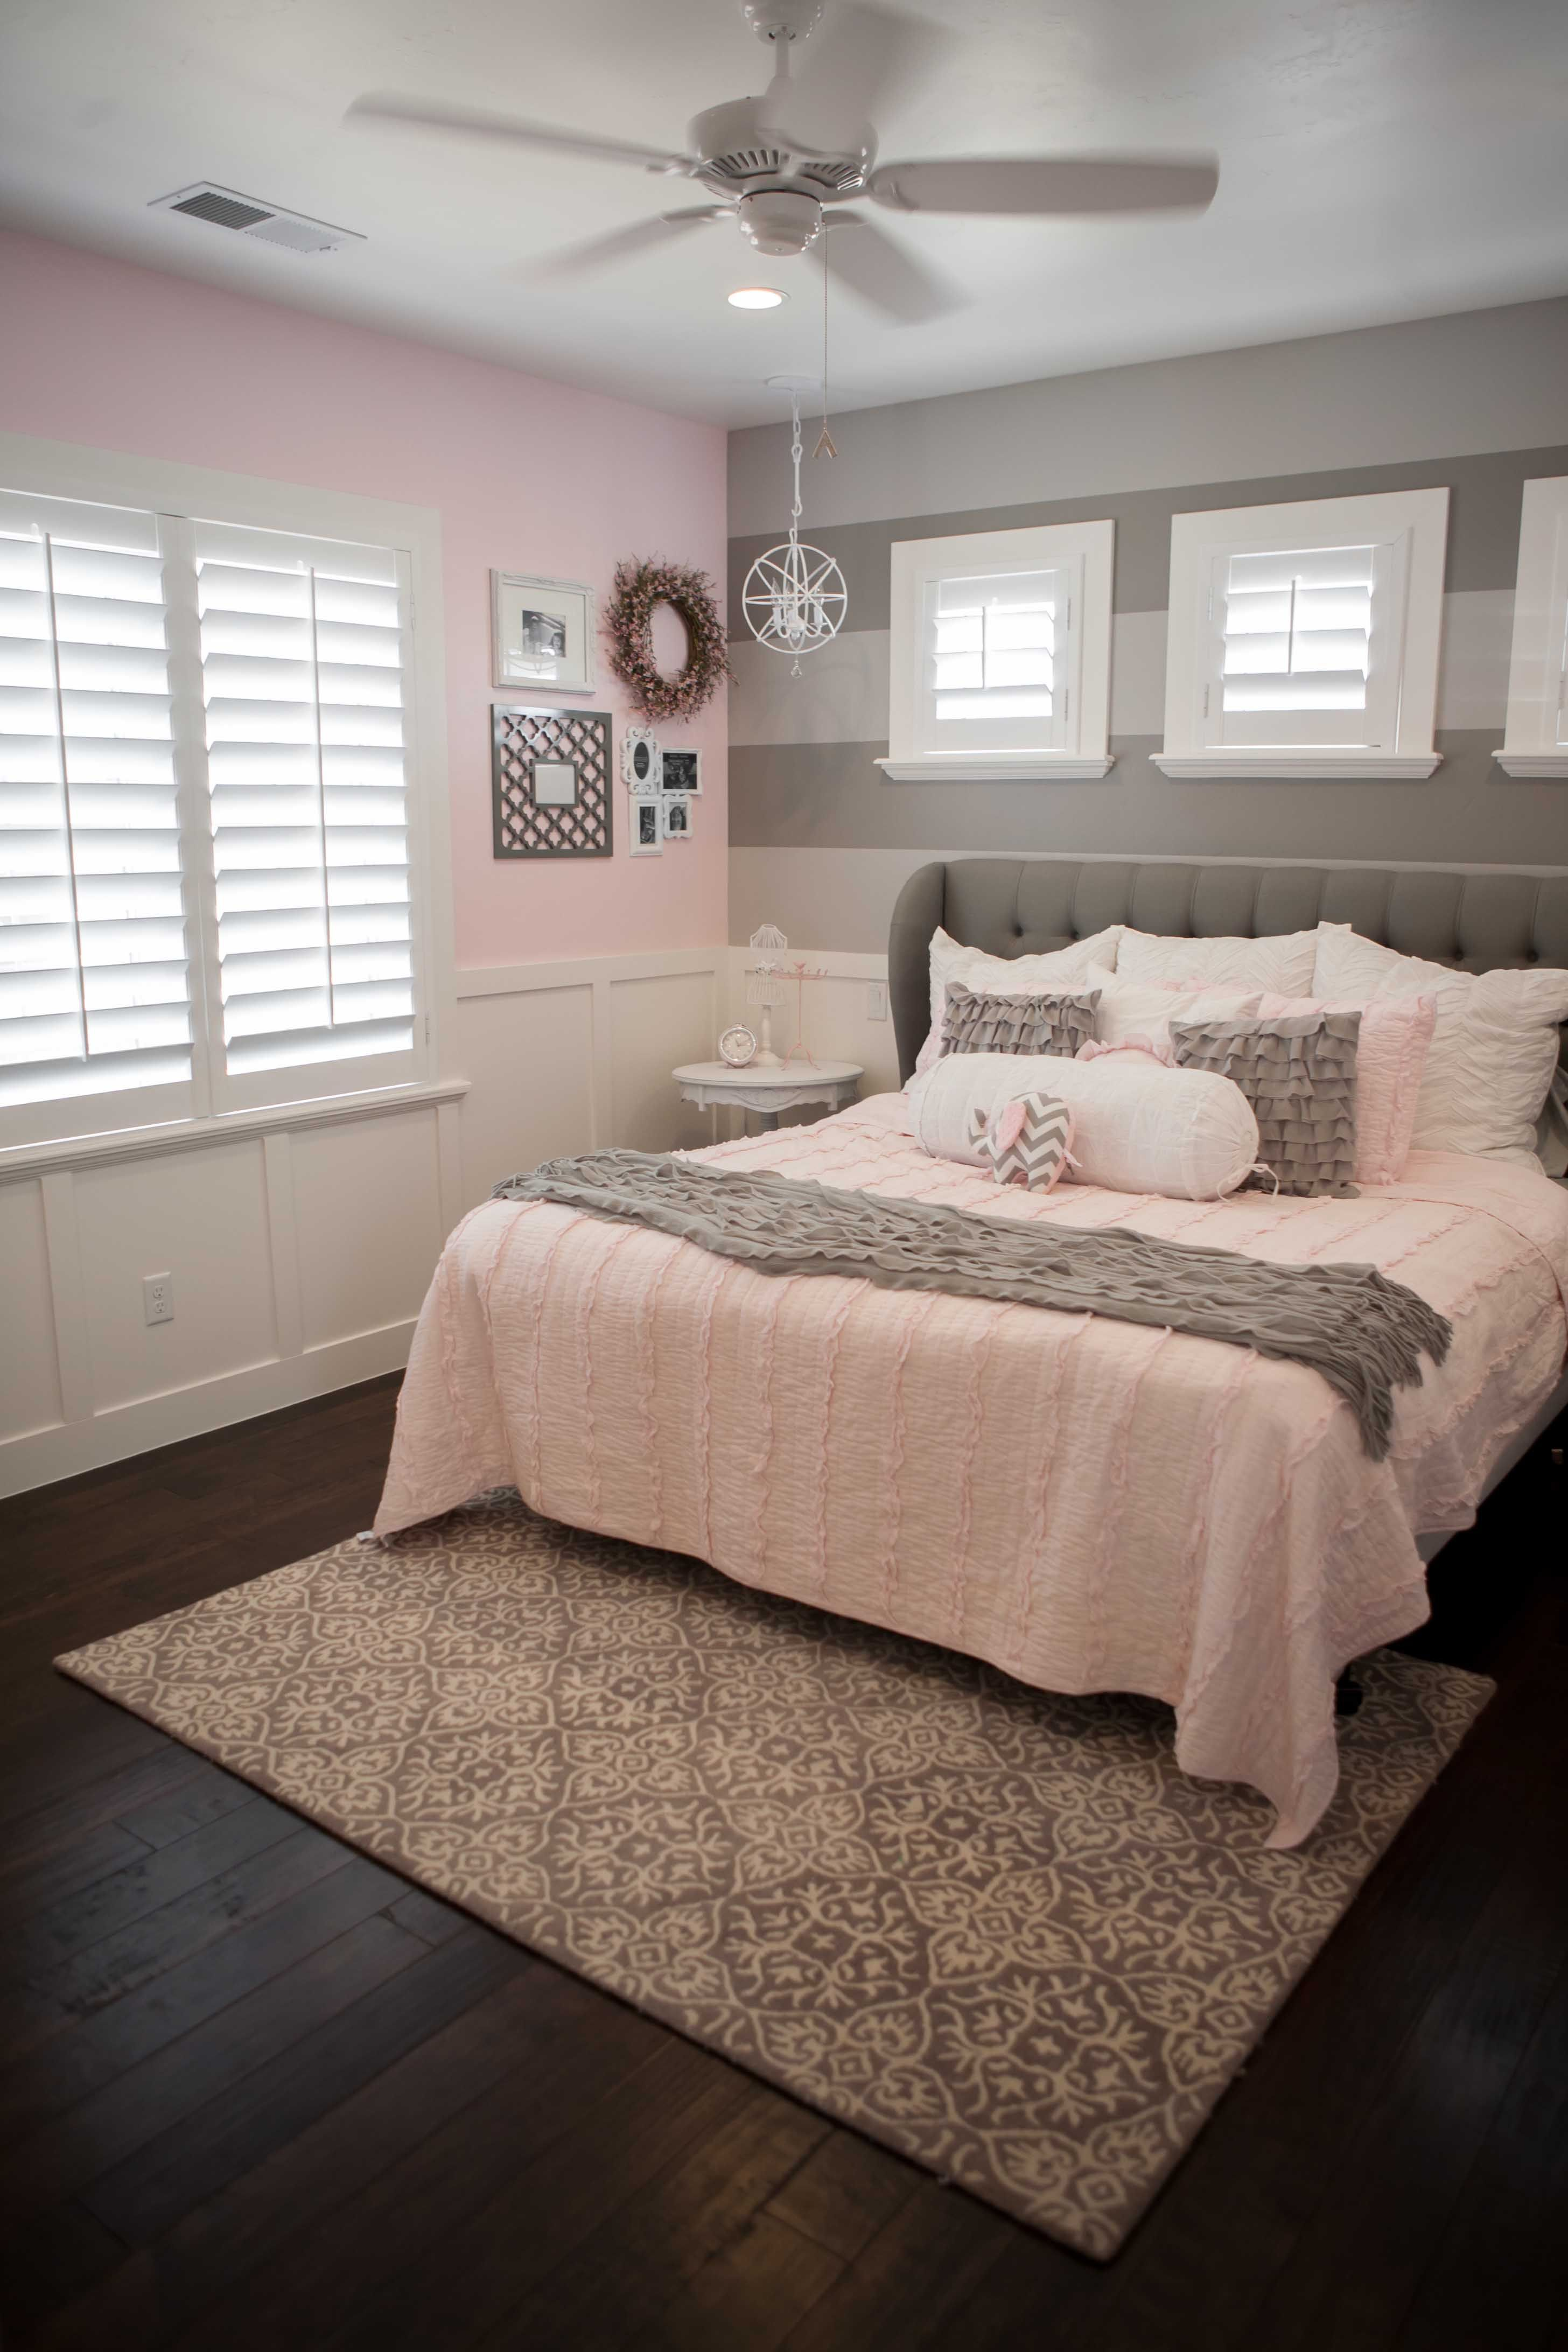 grey and pink bedroom ideas http aprikot xyz 074537 grey and pink bedroom ideas 939 girls on grey and light pink bedroom decorating ideas id=19699